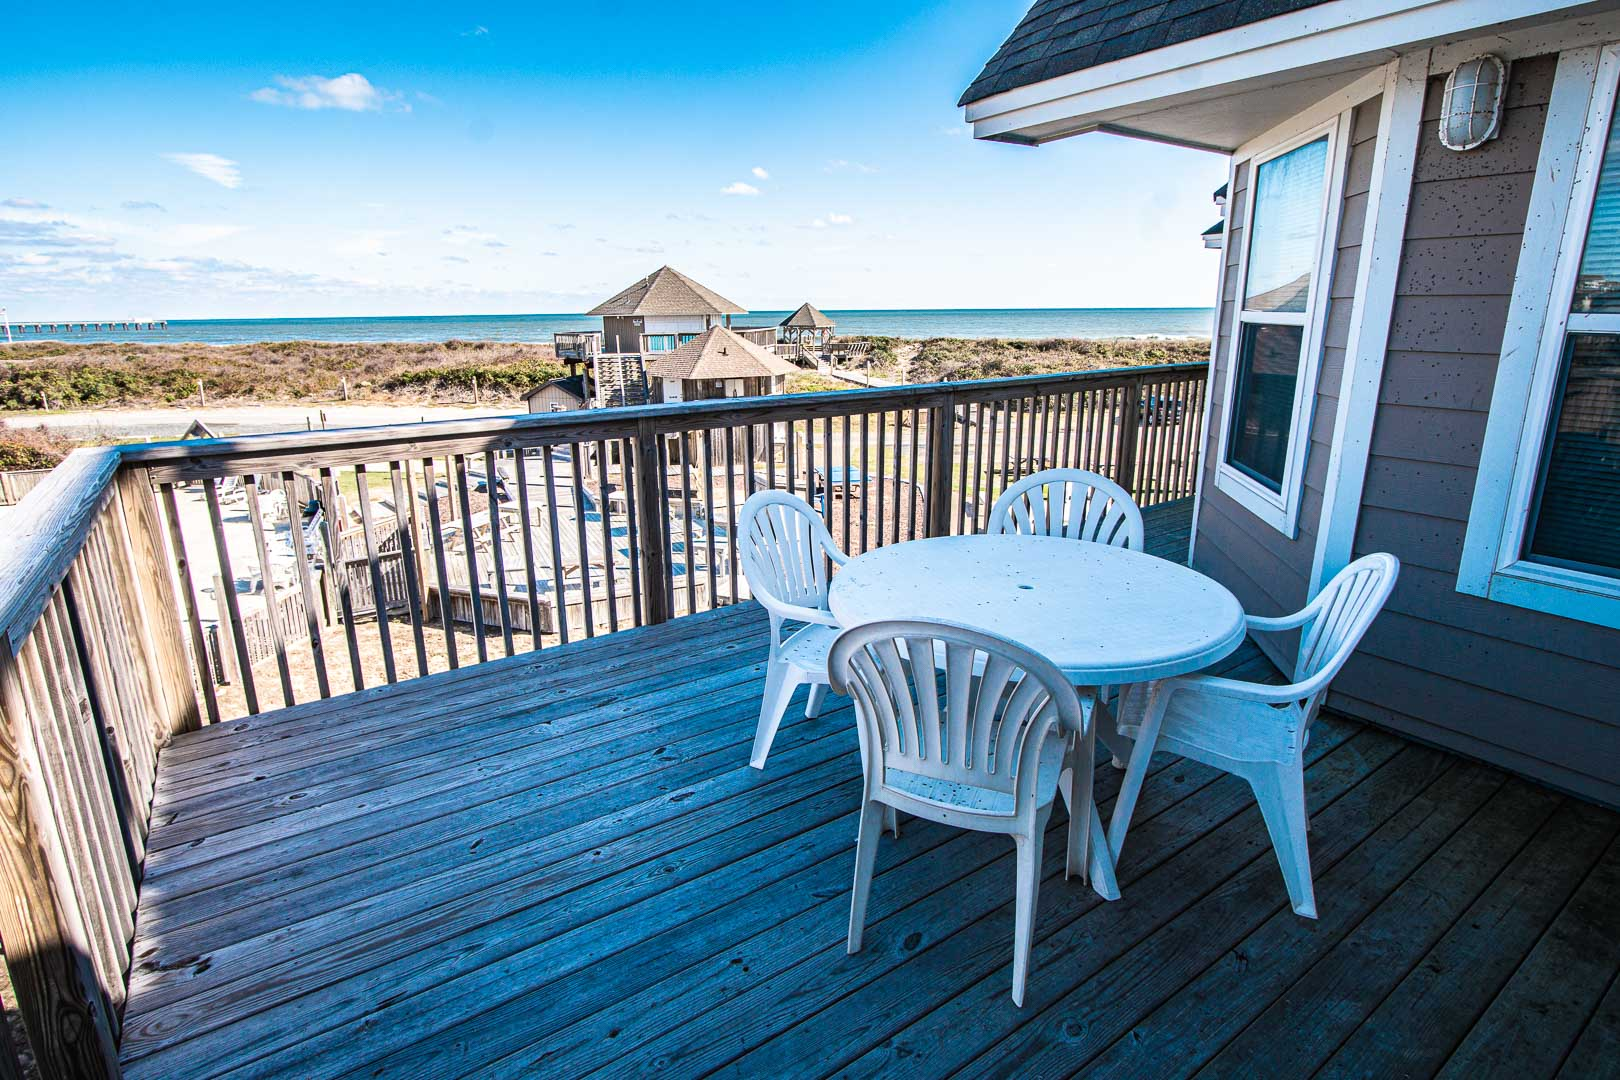 A scenic view from the patio deck at VRI's Barrier Island Station in North Carolina.